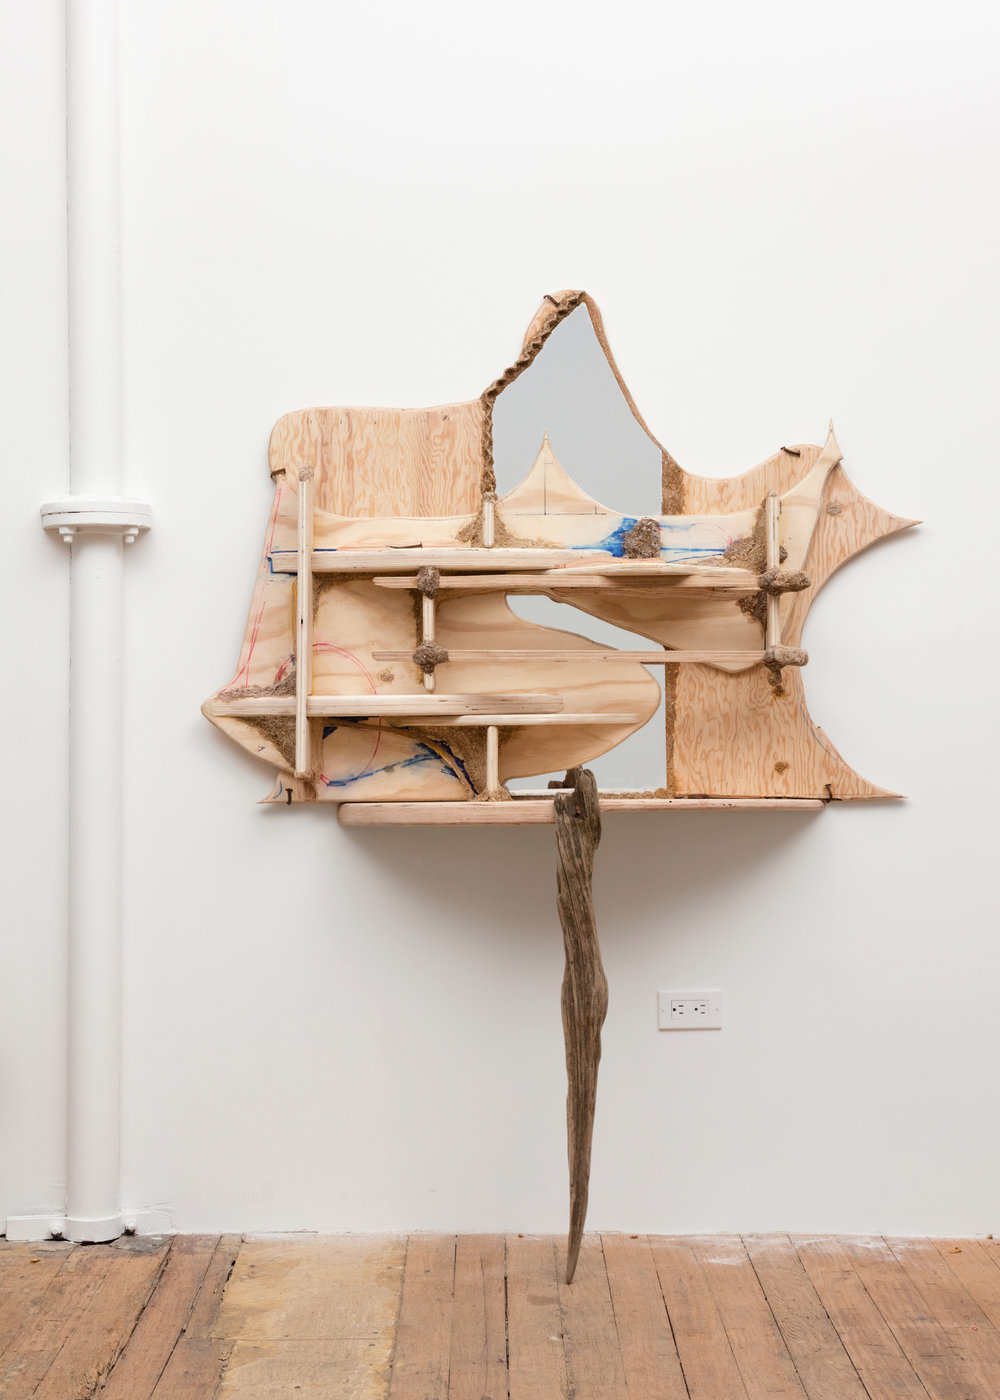 Hobbit's Vanity 2016 Plywood, driftwood, sawdust, marker, mirror, hand forged nails 67 x 51 x 13.25 inches (170.18 x 129.54 x 33.66 cm)